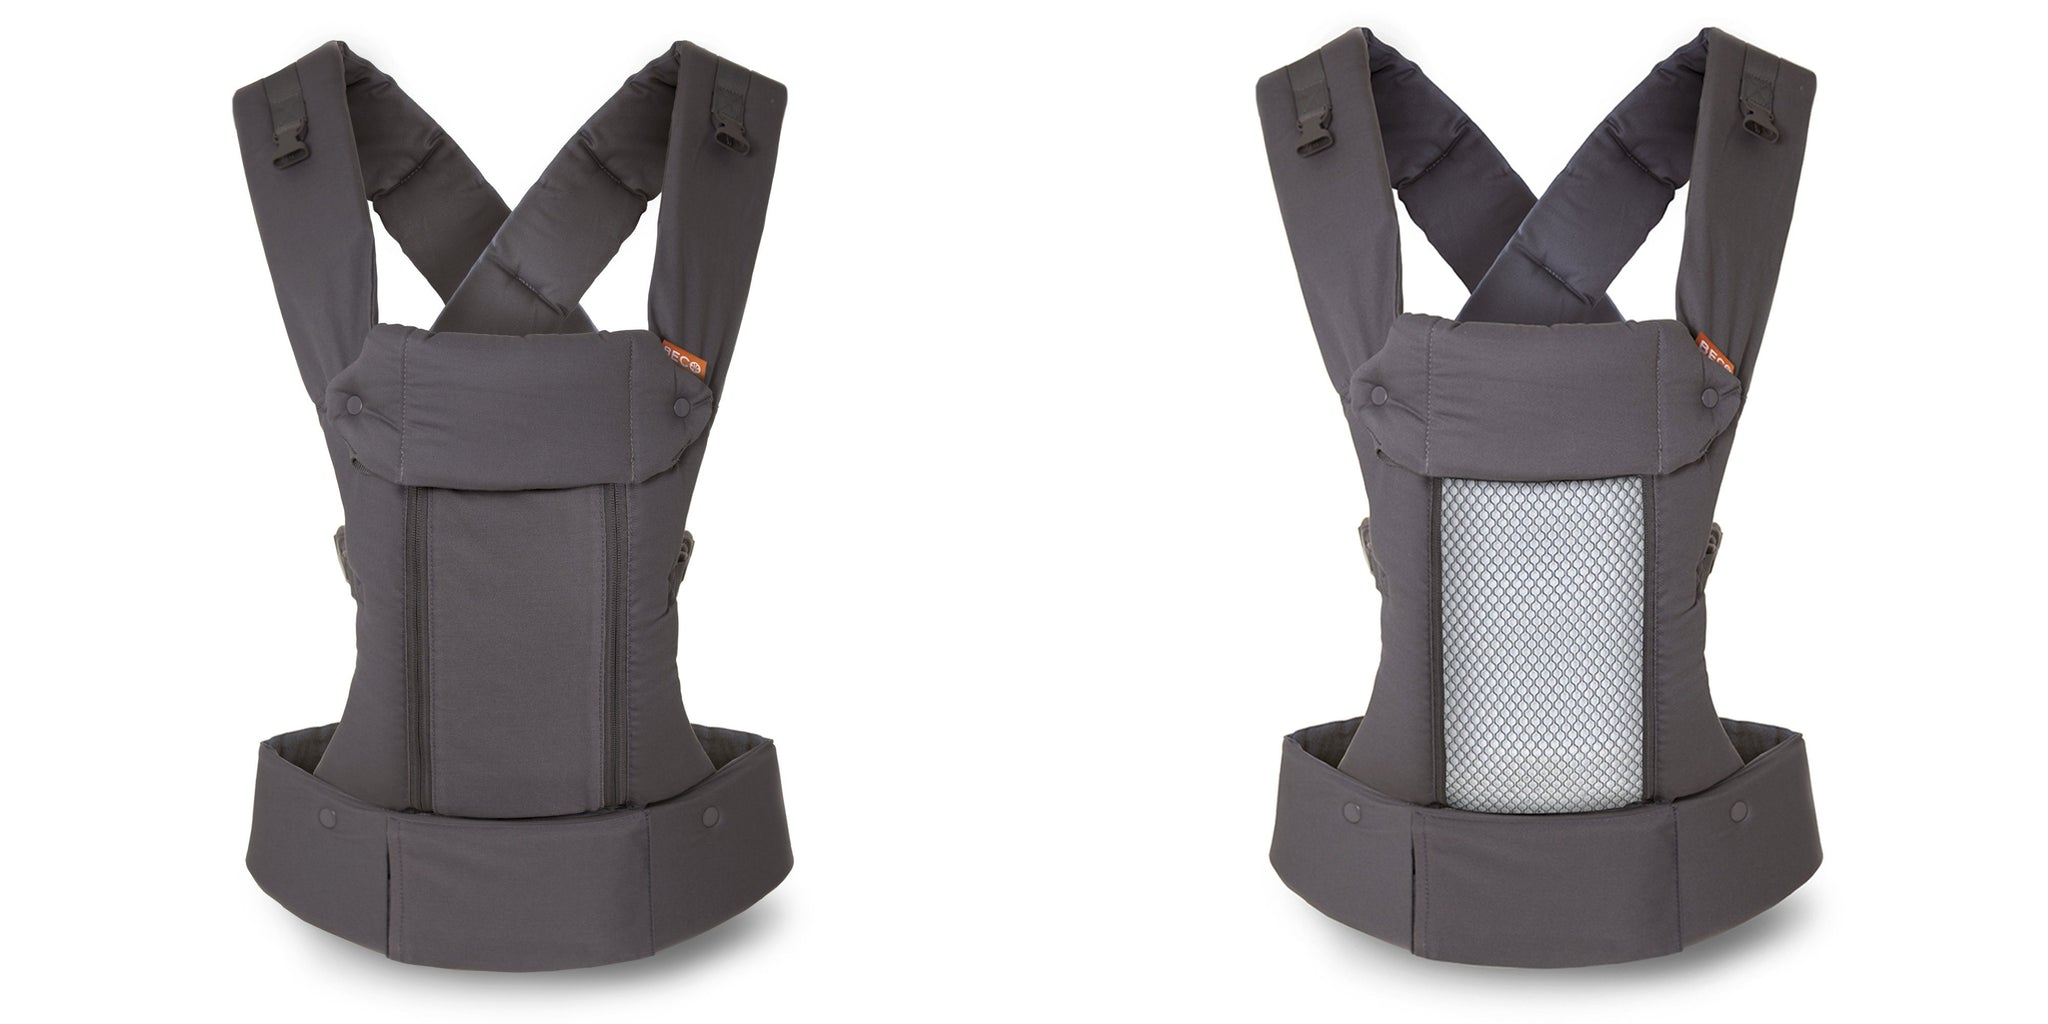 Supportive and Adaptable Carrier for Babies from 7 Dark Grey Cool Cotton 45 lbs Beco 8 All-in-One Baby Carrier